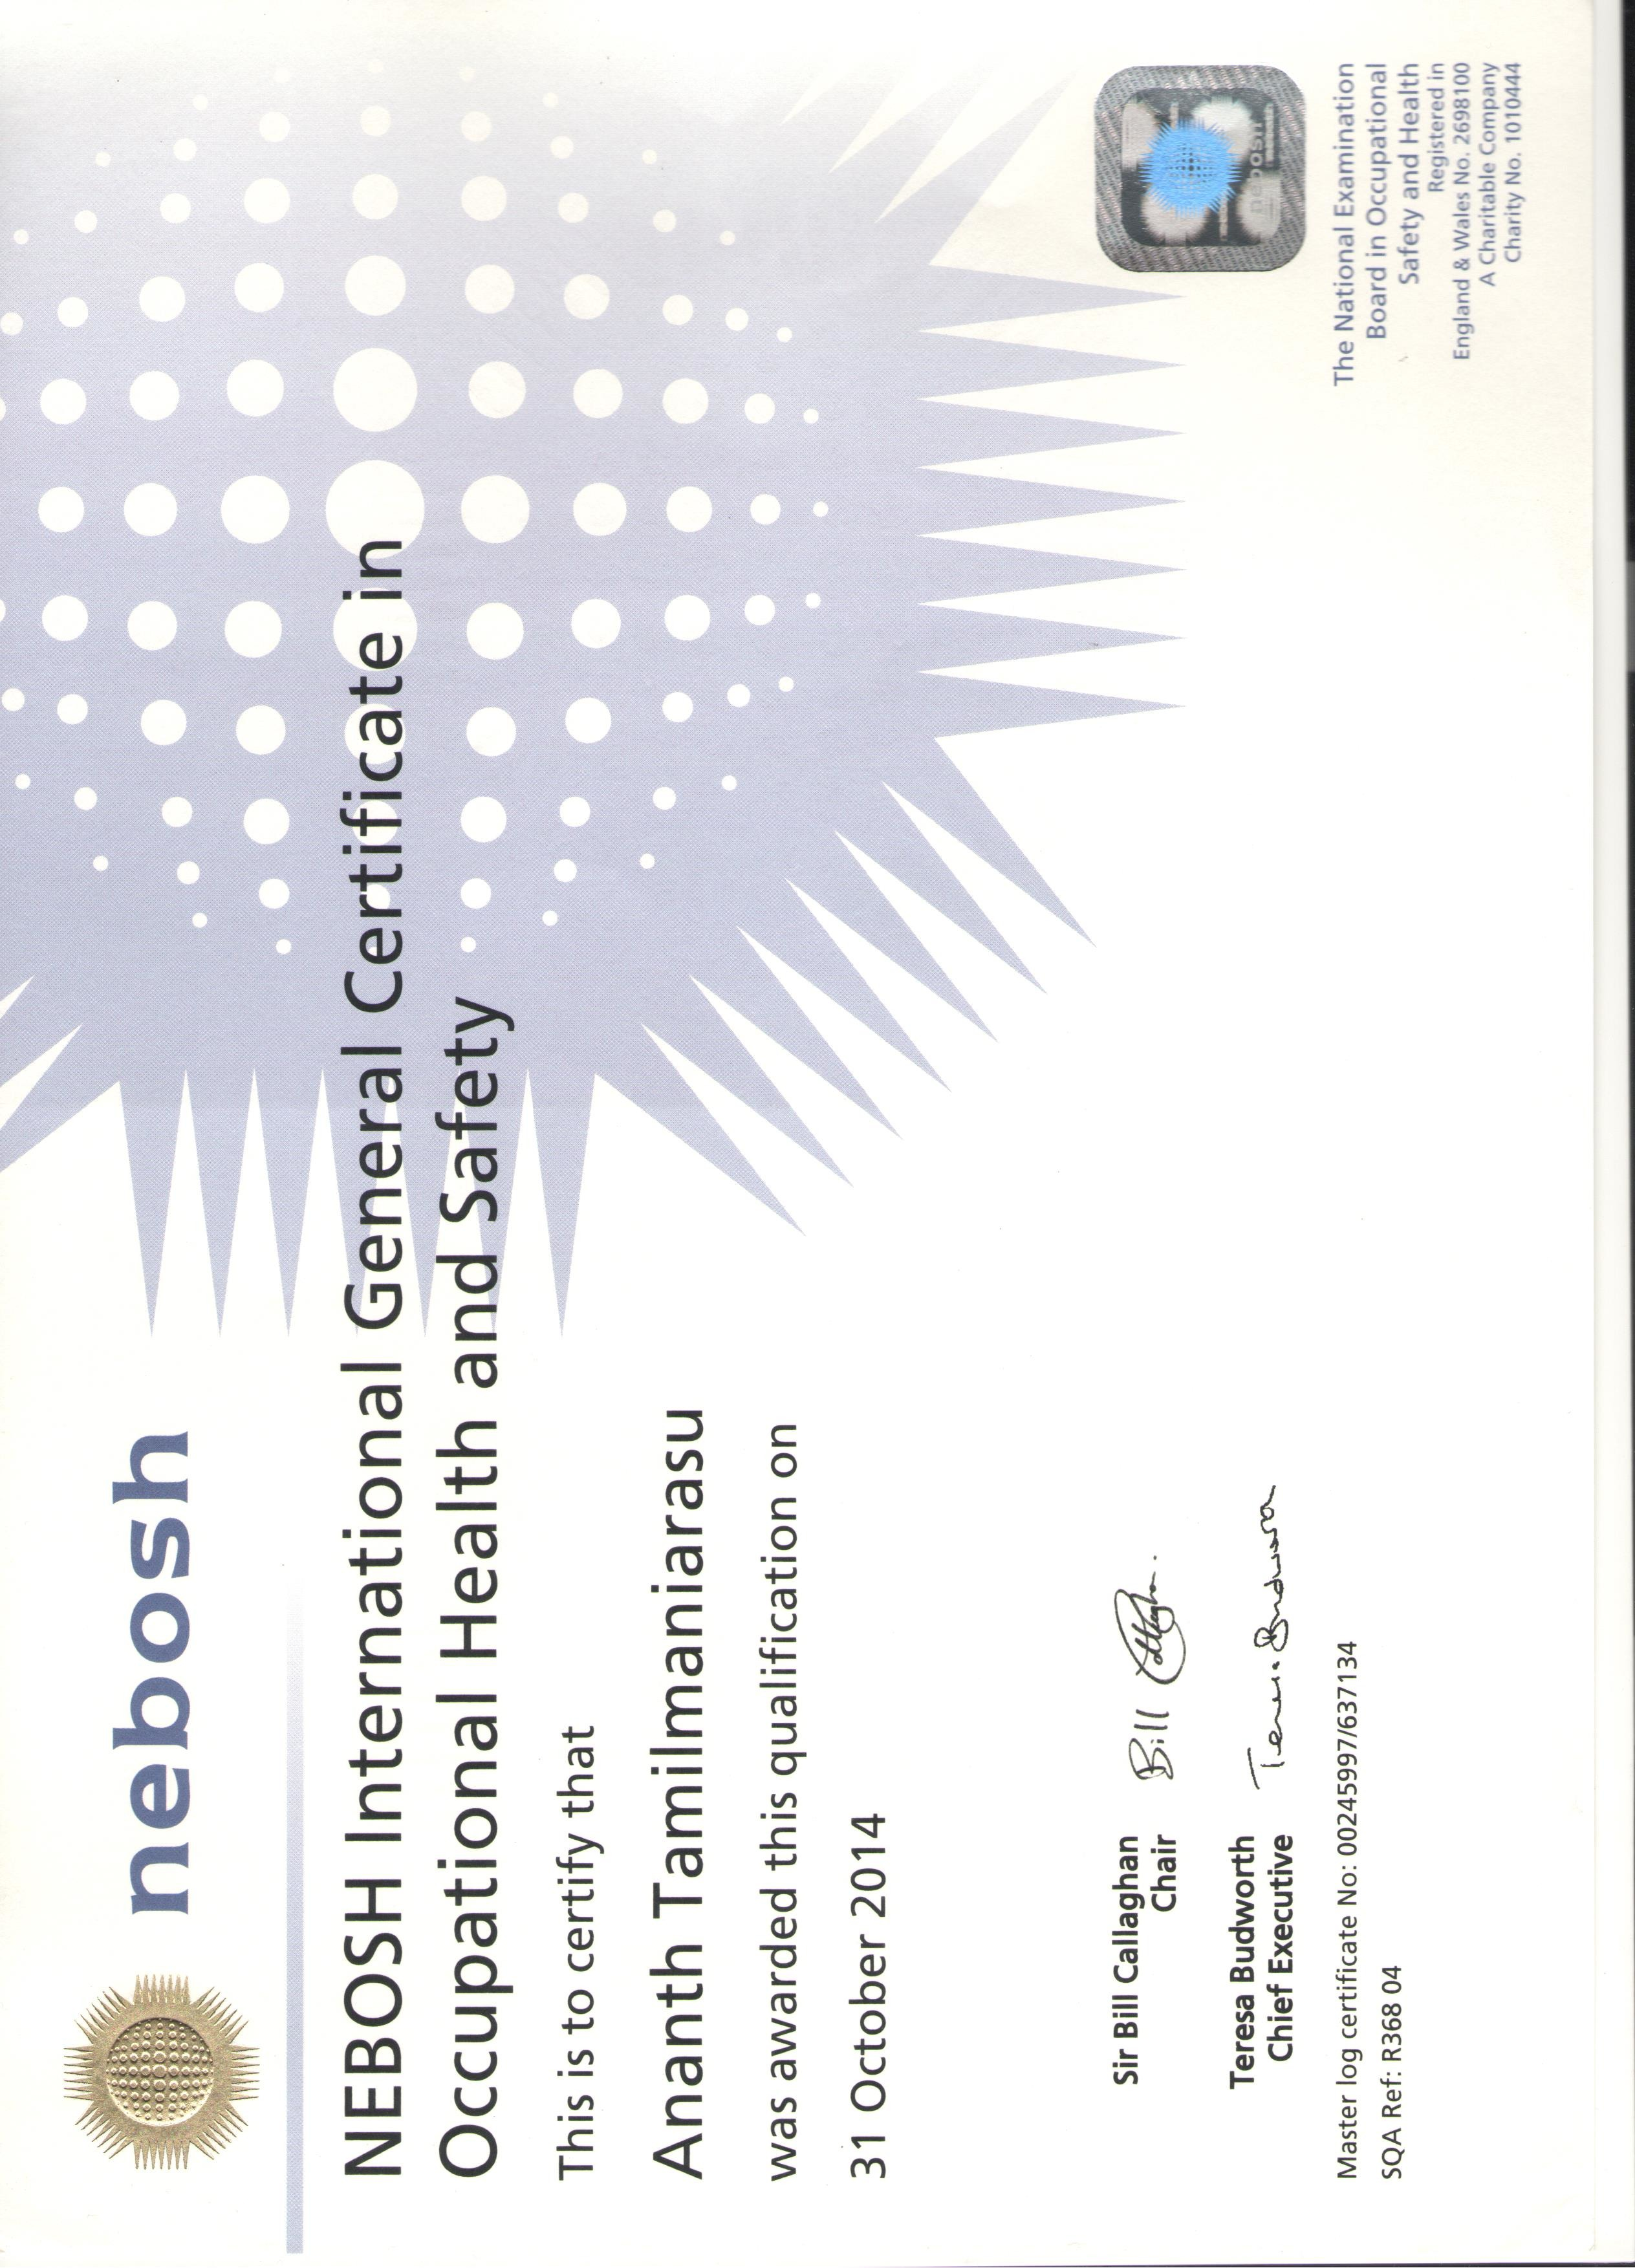 Diploma International General Certificate At NEBOSH Location United Kingdom October 2014 Occupational Health Safety